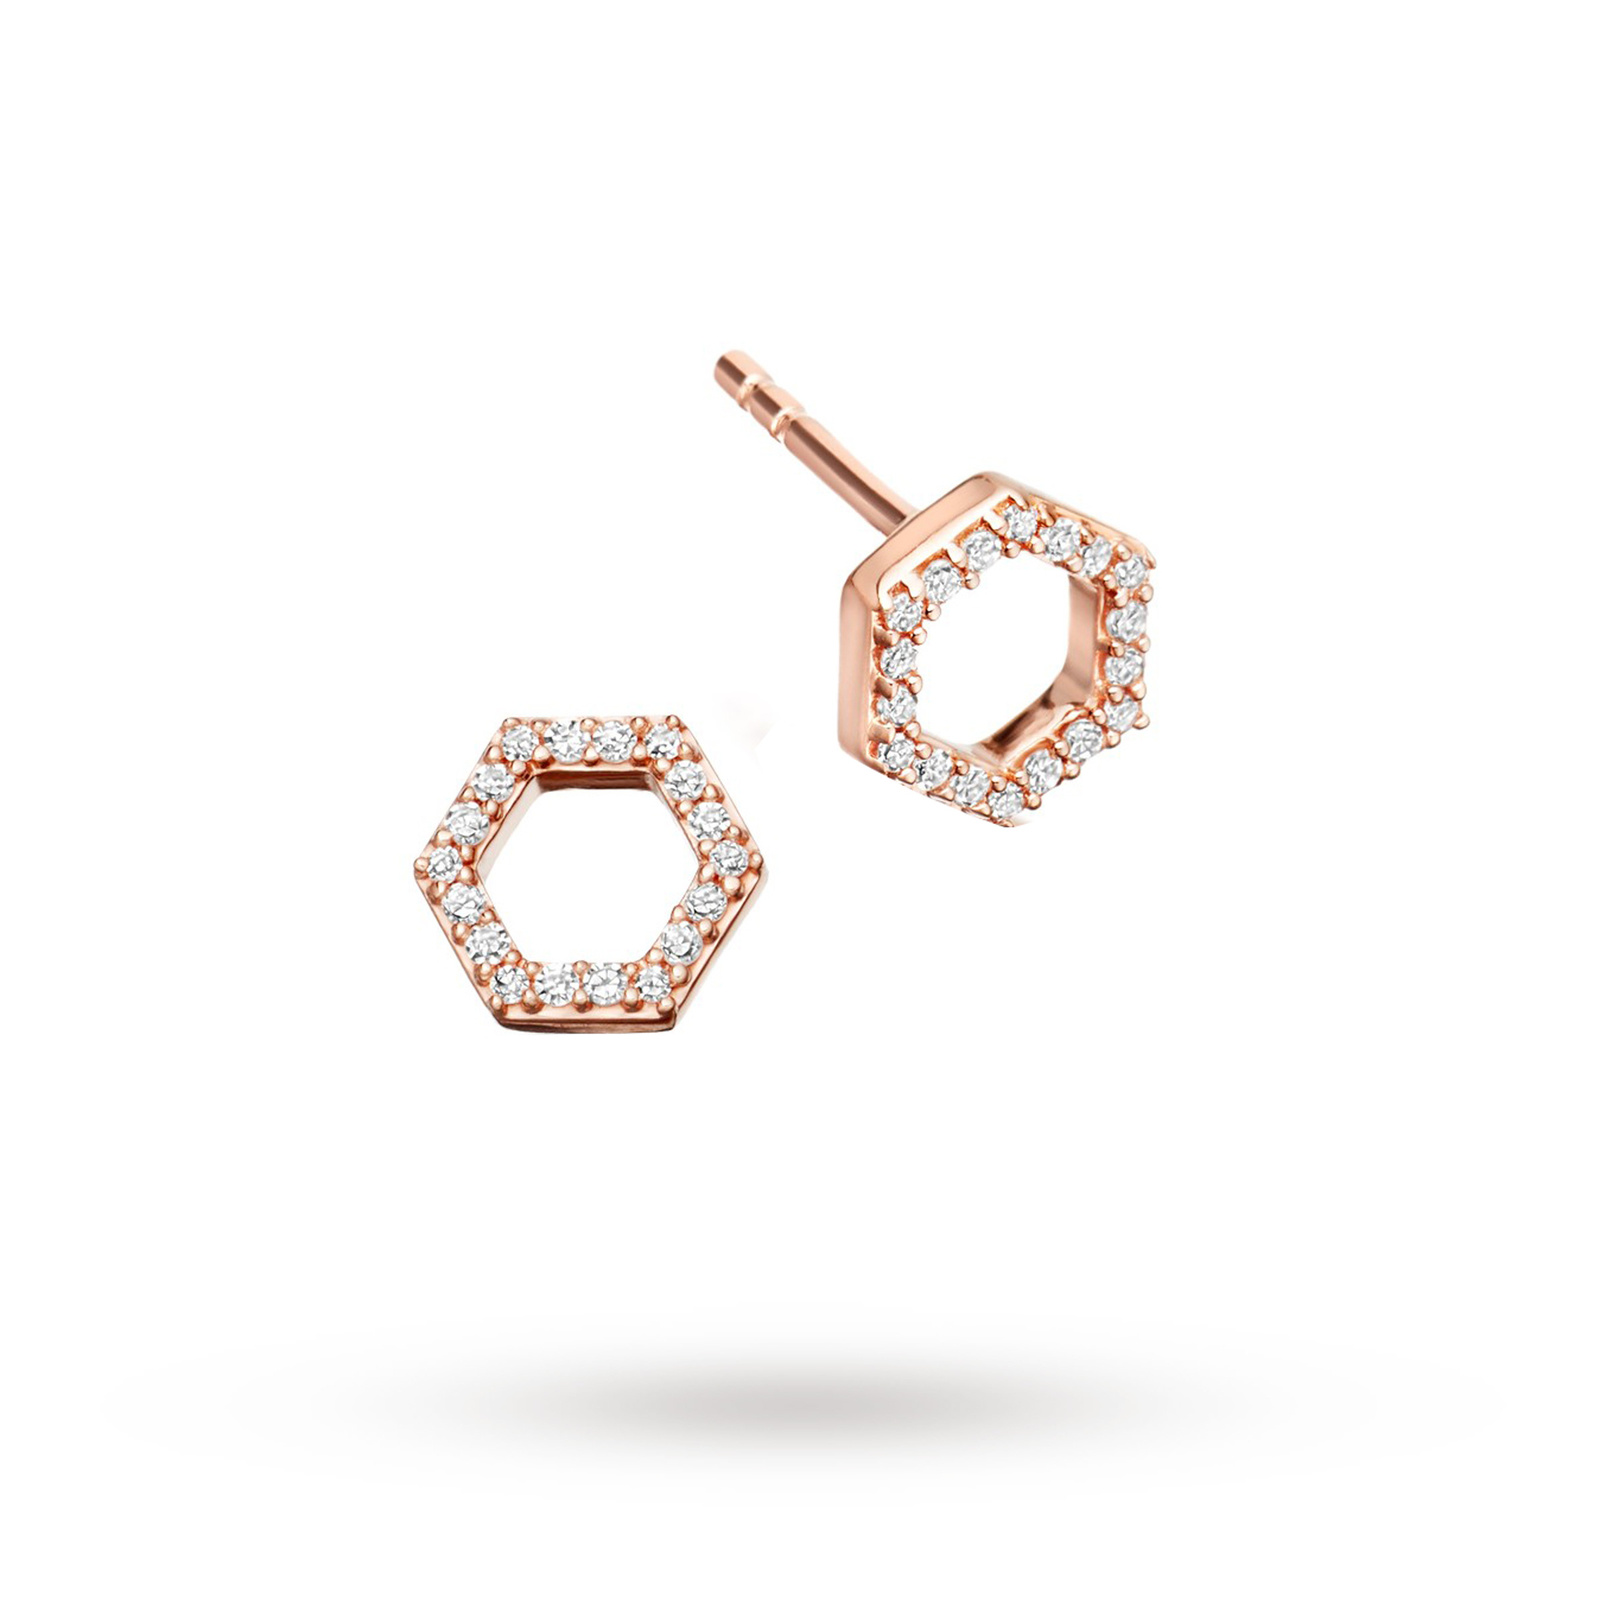 Astley Clarke Honeycomb Stud Earrings